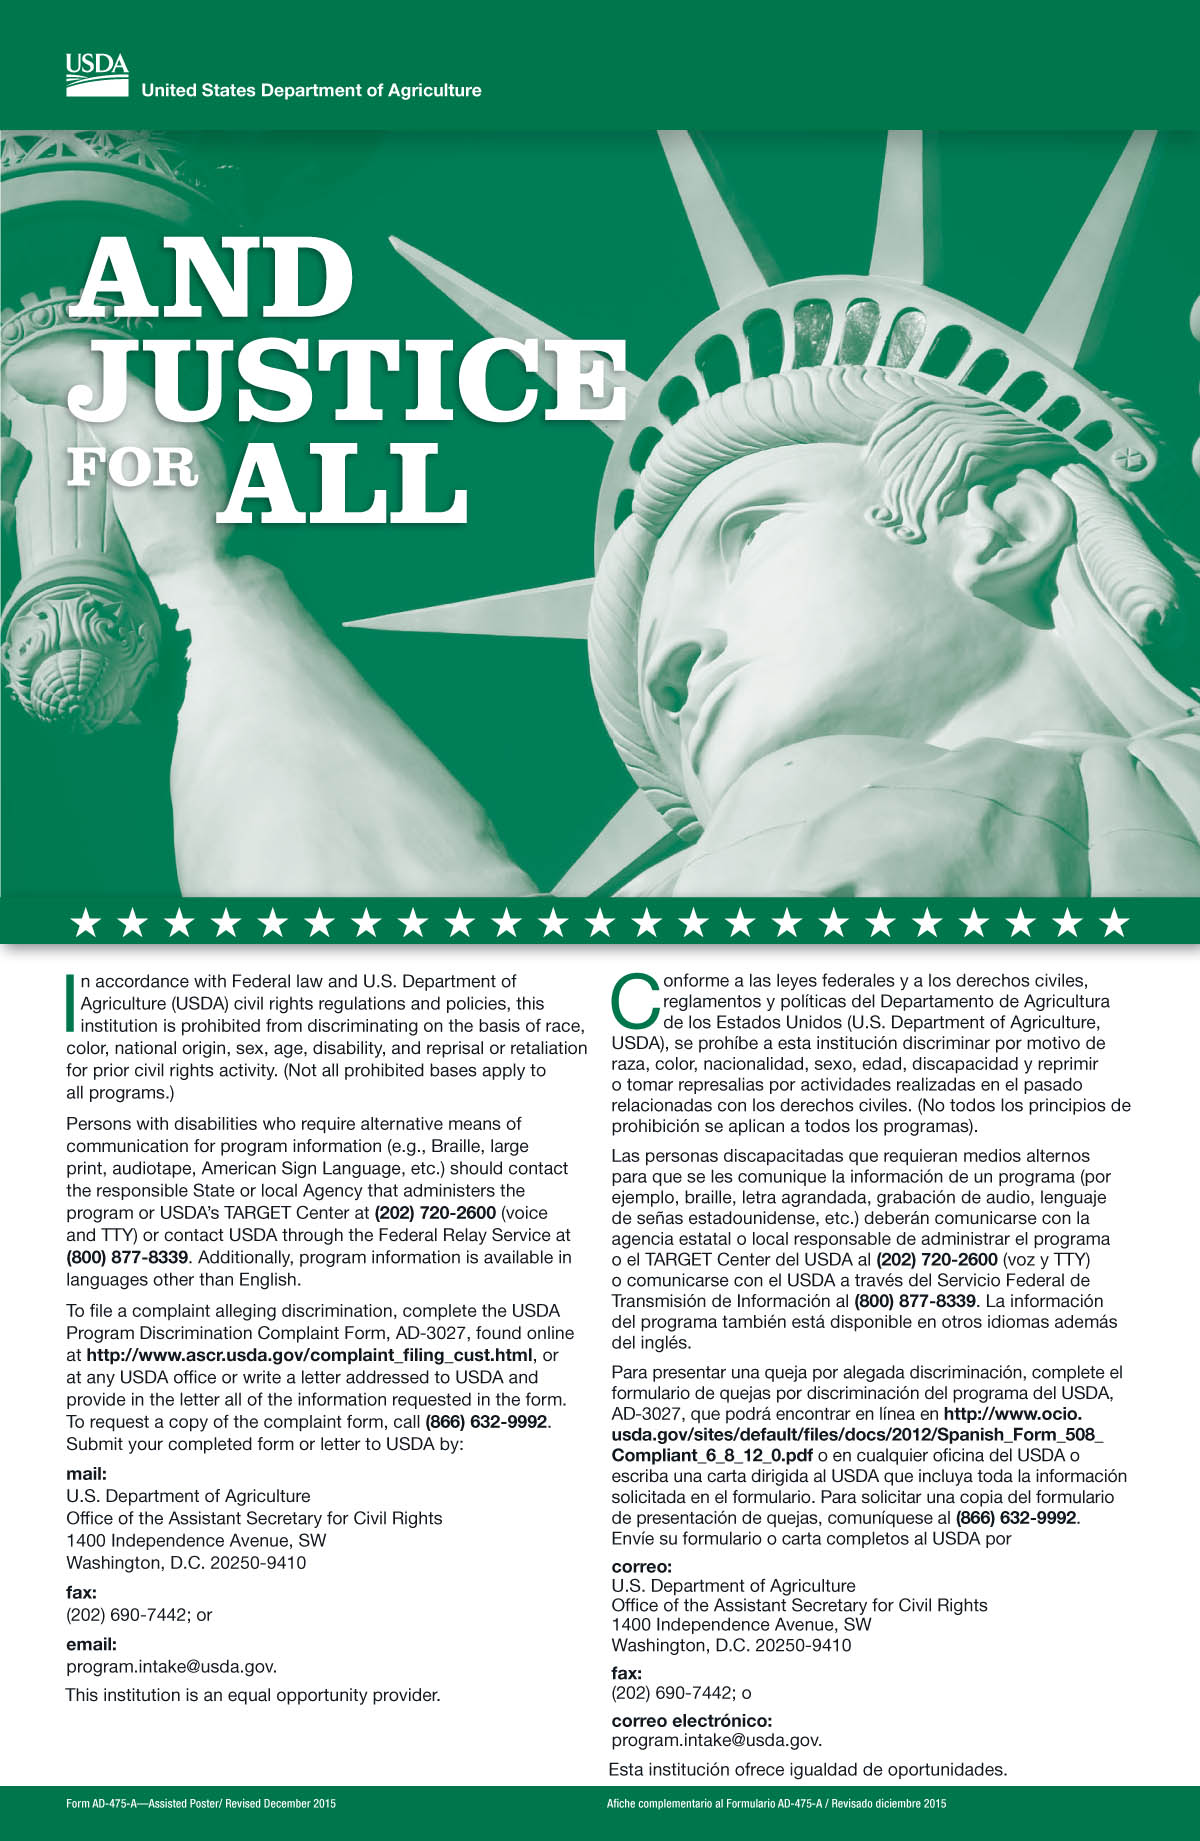 New And Justice for All Poster